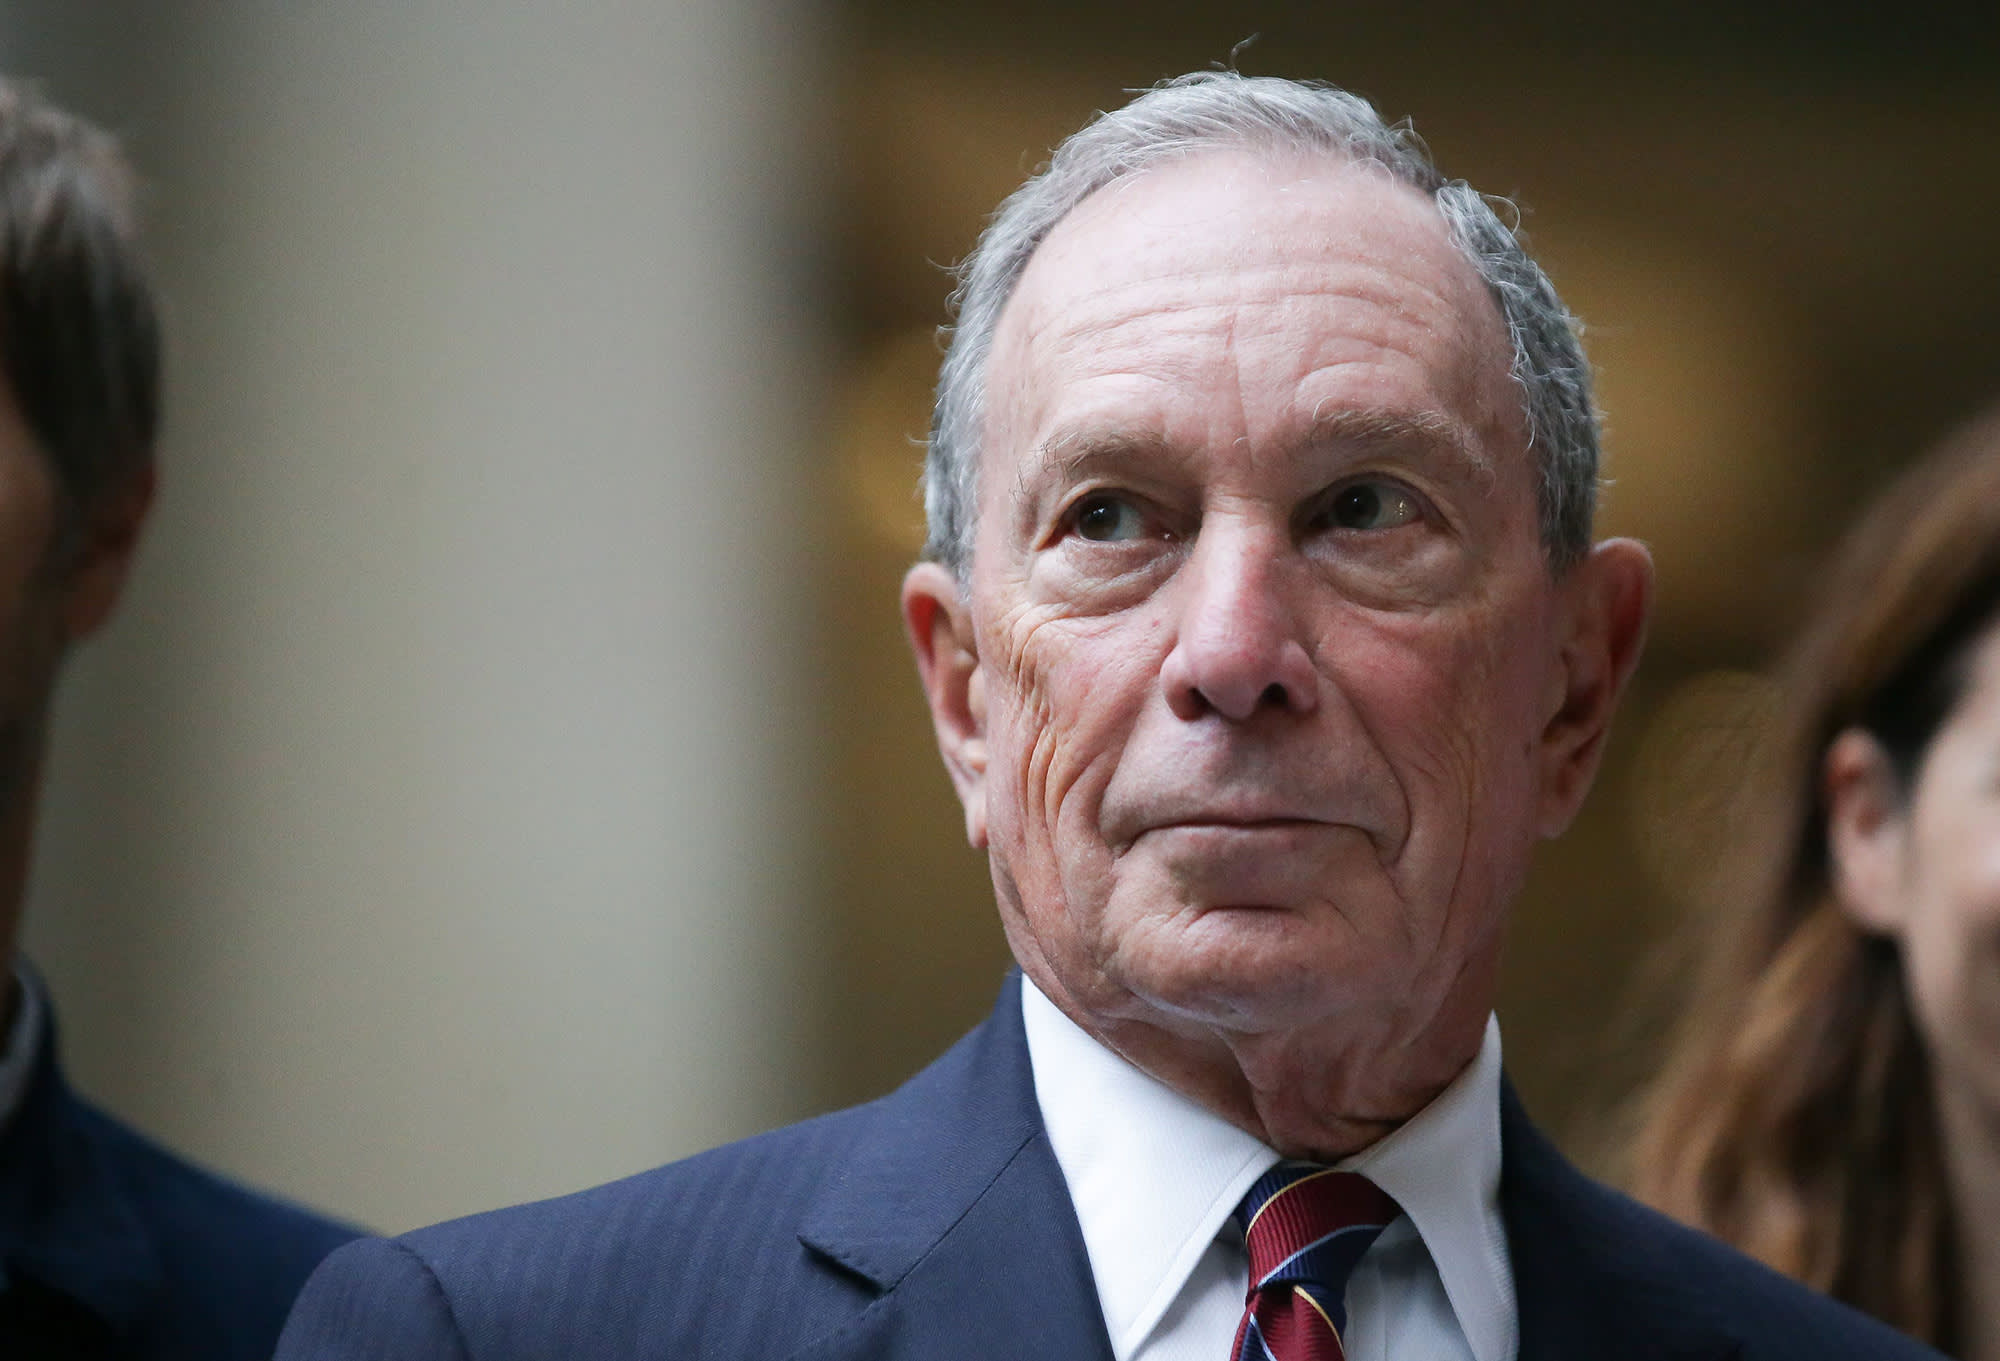 Mike Bloomberg launches $5 million TV ad buy across dozens of states as he prepares a 2020 run for president